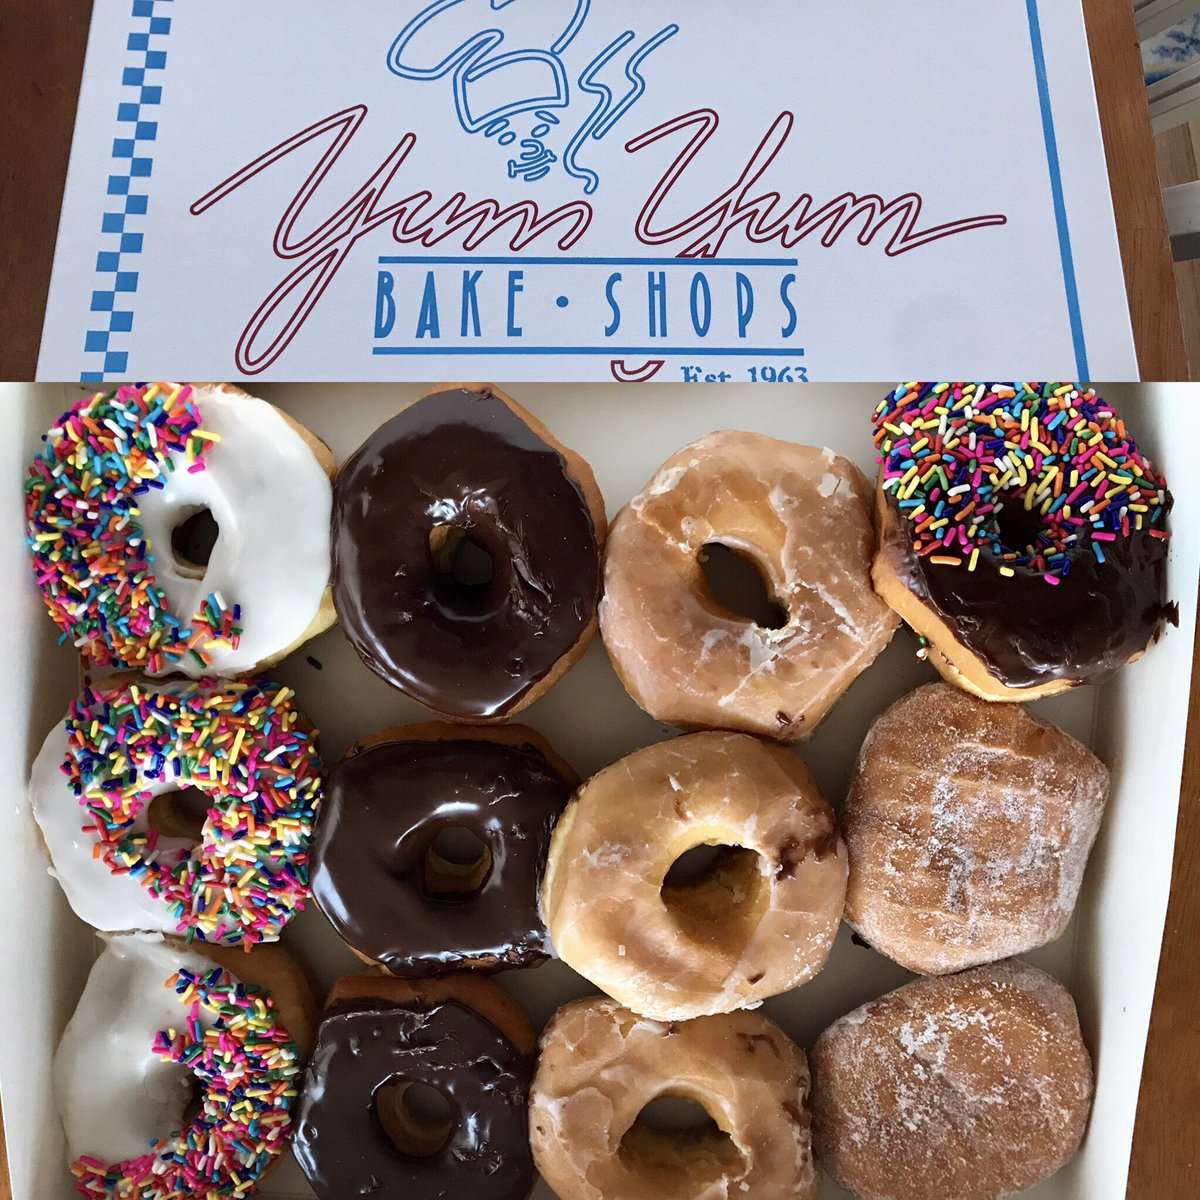 This just happened. #DonutsMakeMeGoNuts #YumYumBakeShops #FlyEaglesFly #Phillies #Sixers #Flyers @Eagles @NHLFlyers @Phillies @sixers #HereTheyCome